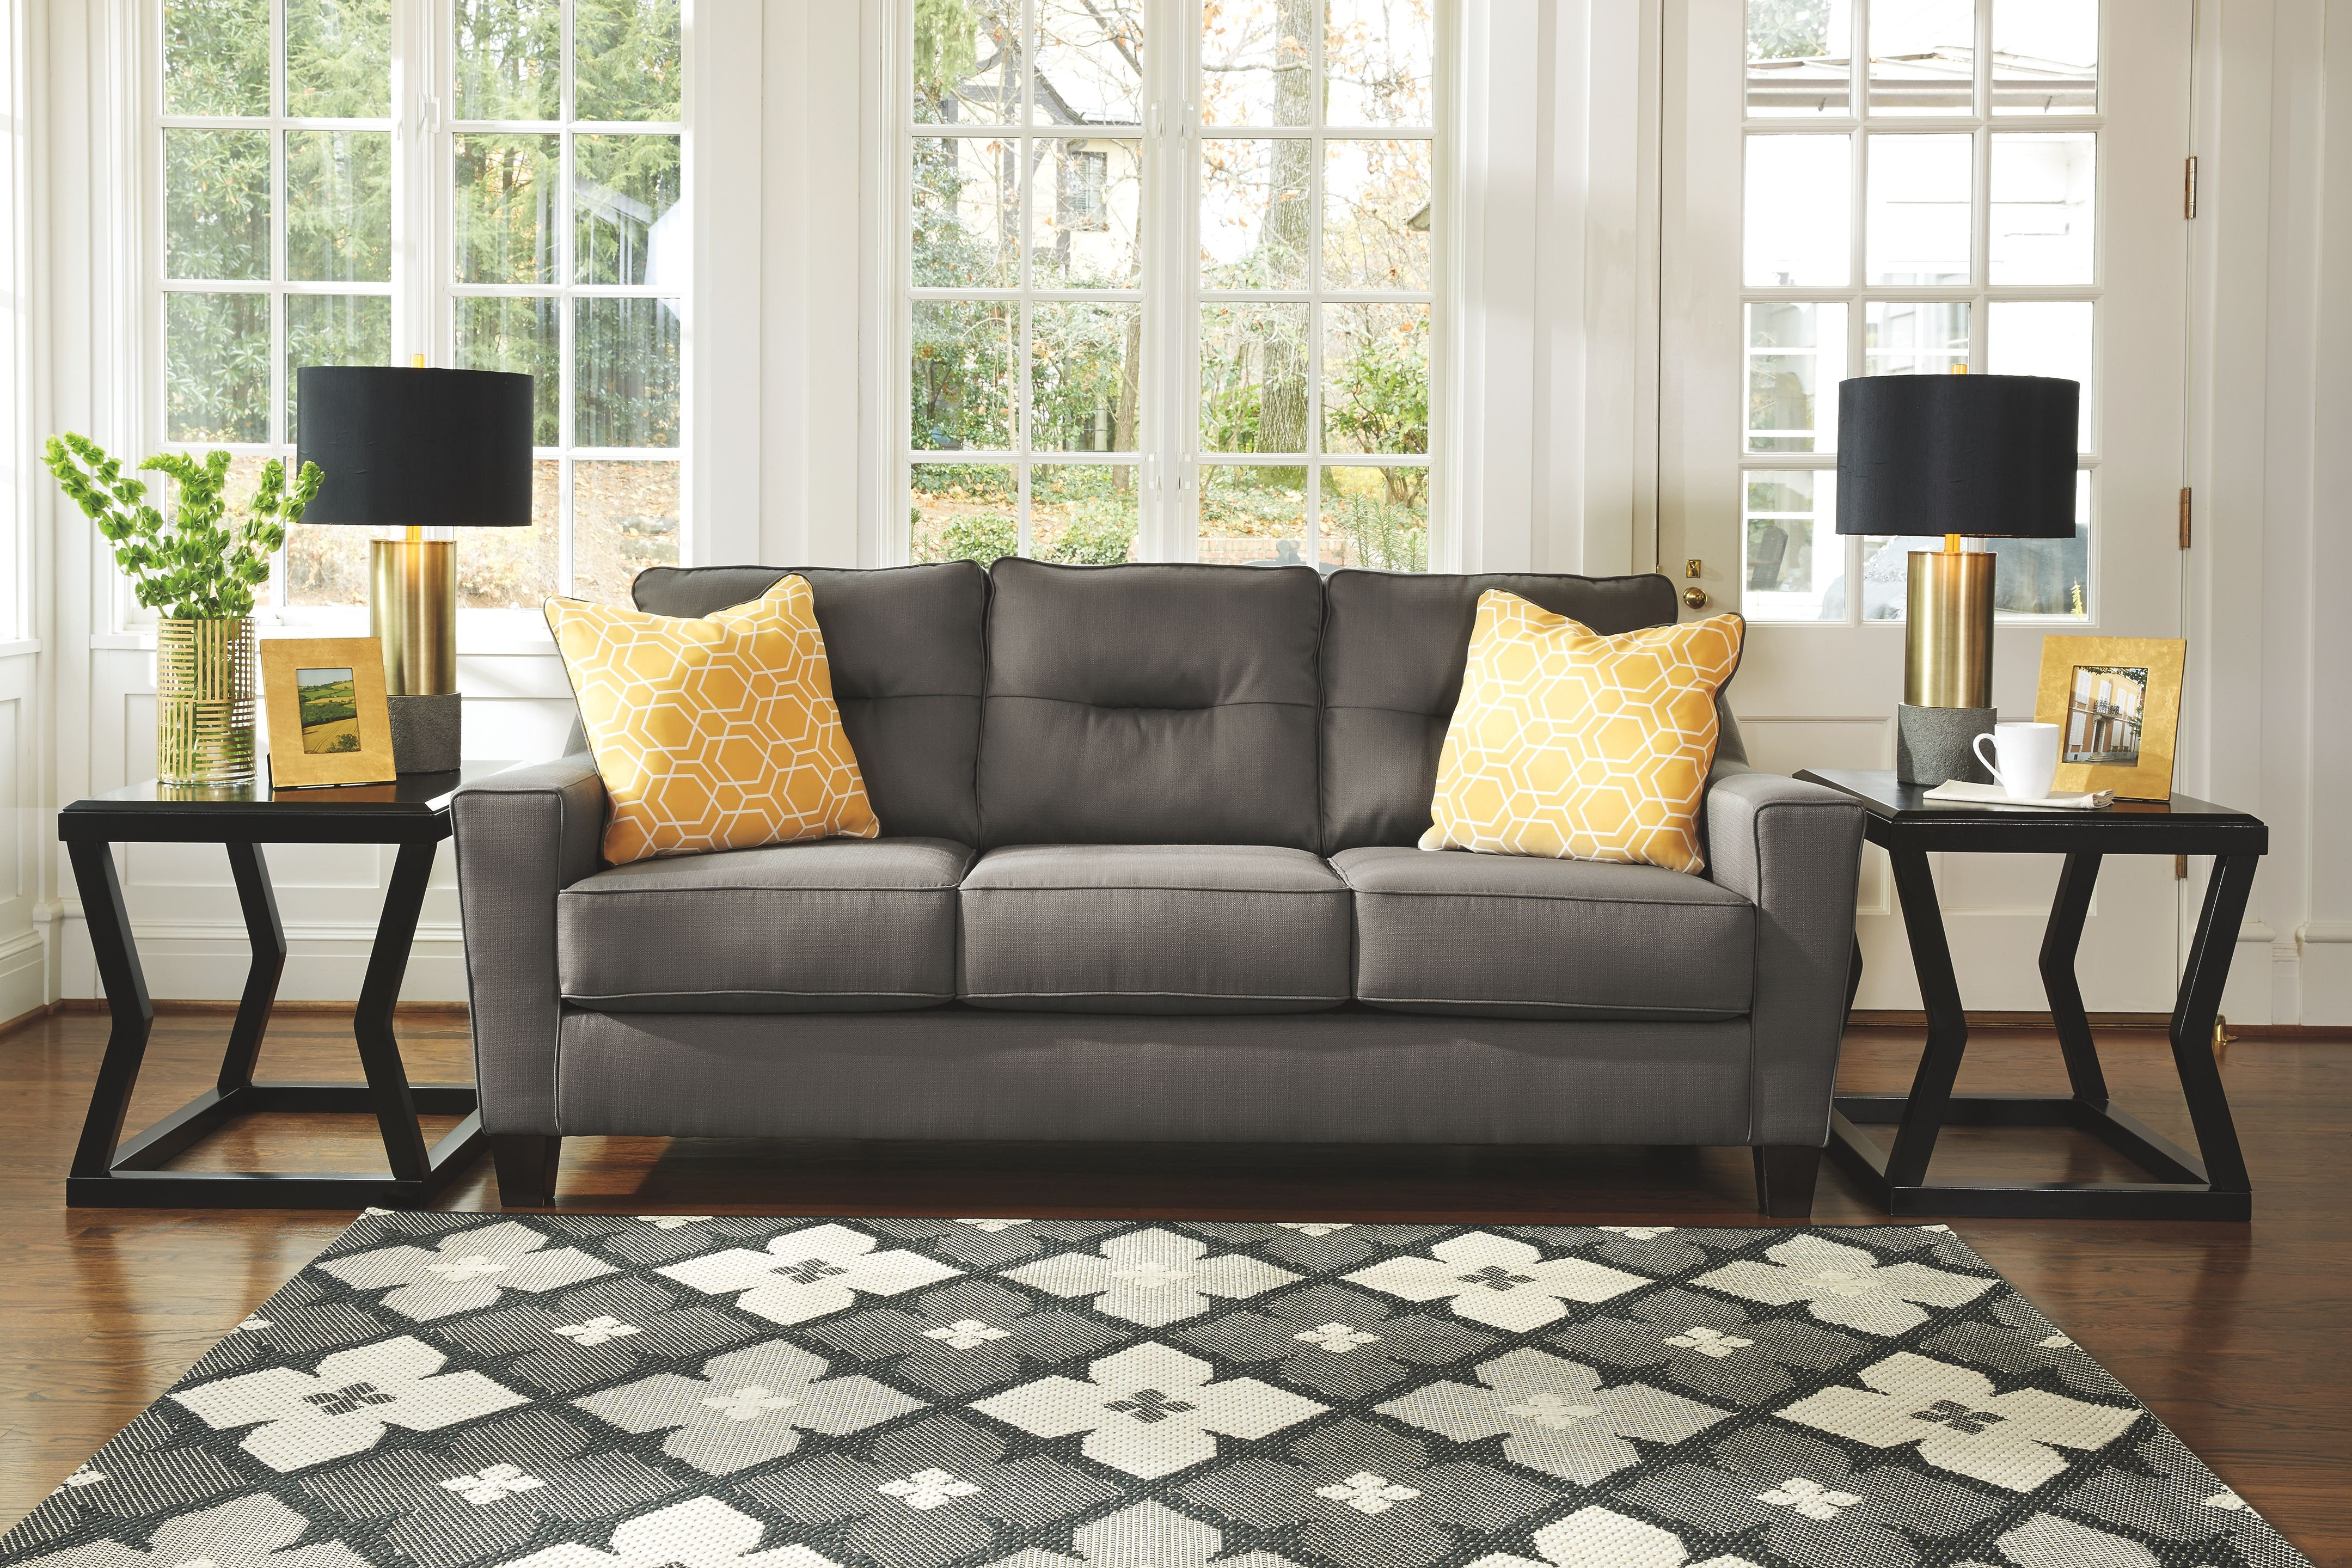 Signature Design by Ashley Living Room Sofa    Nouvella Grey     Signature Design by Ashley Sofa    Nouvella Grey  6690238